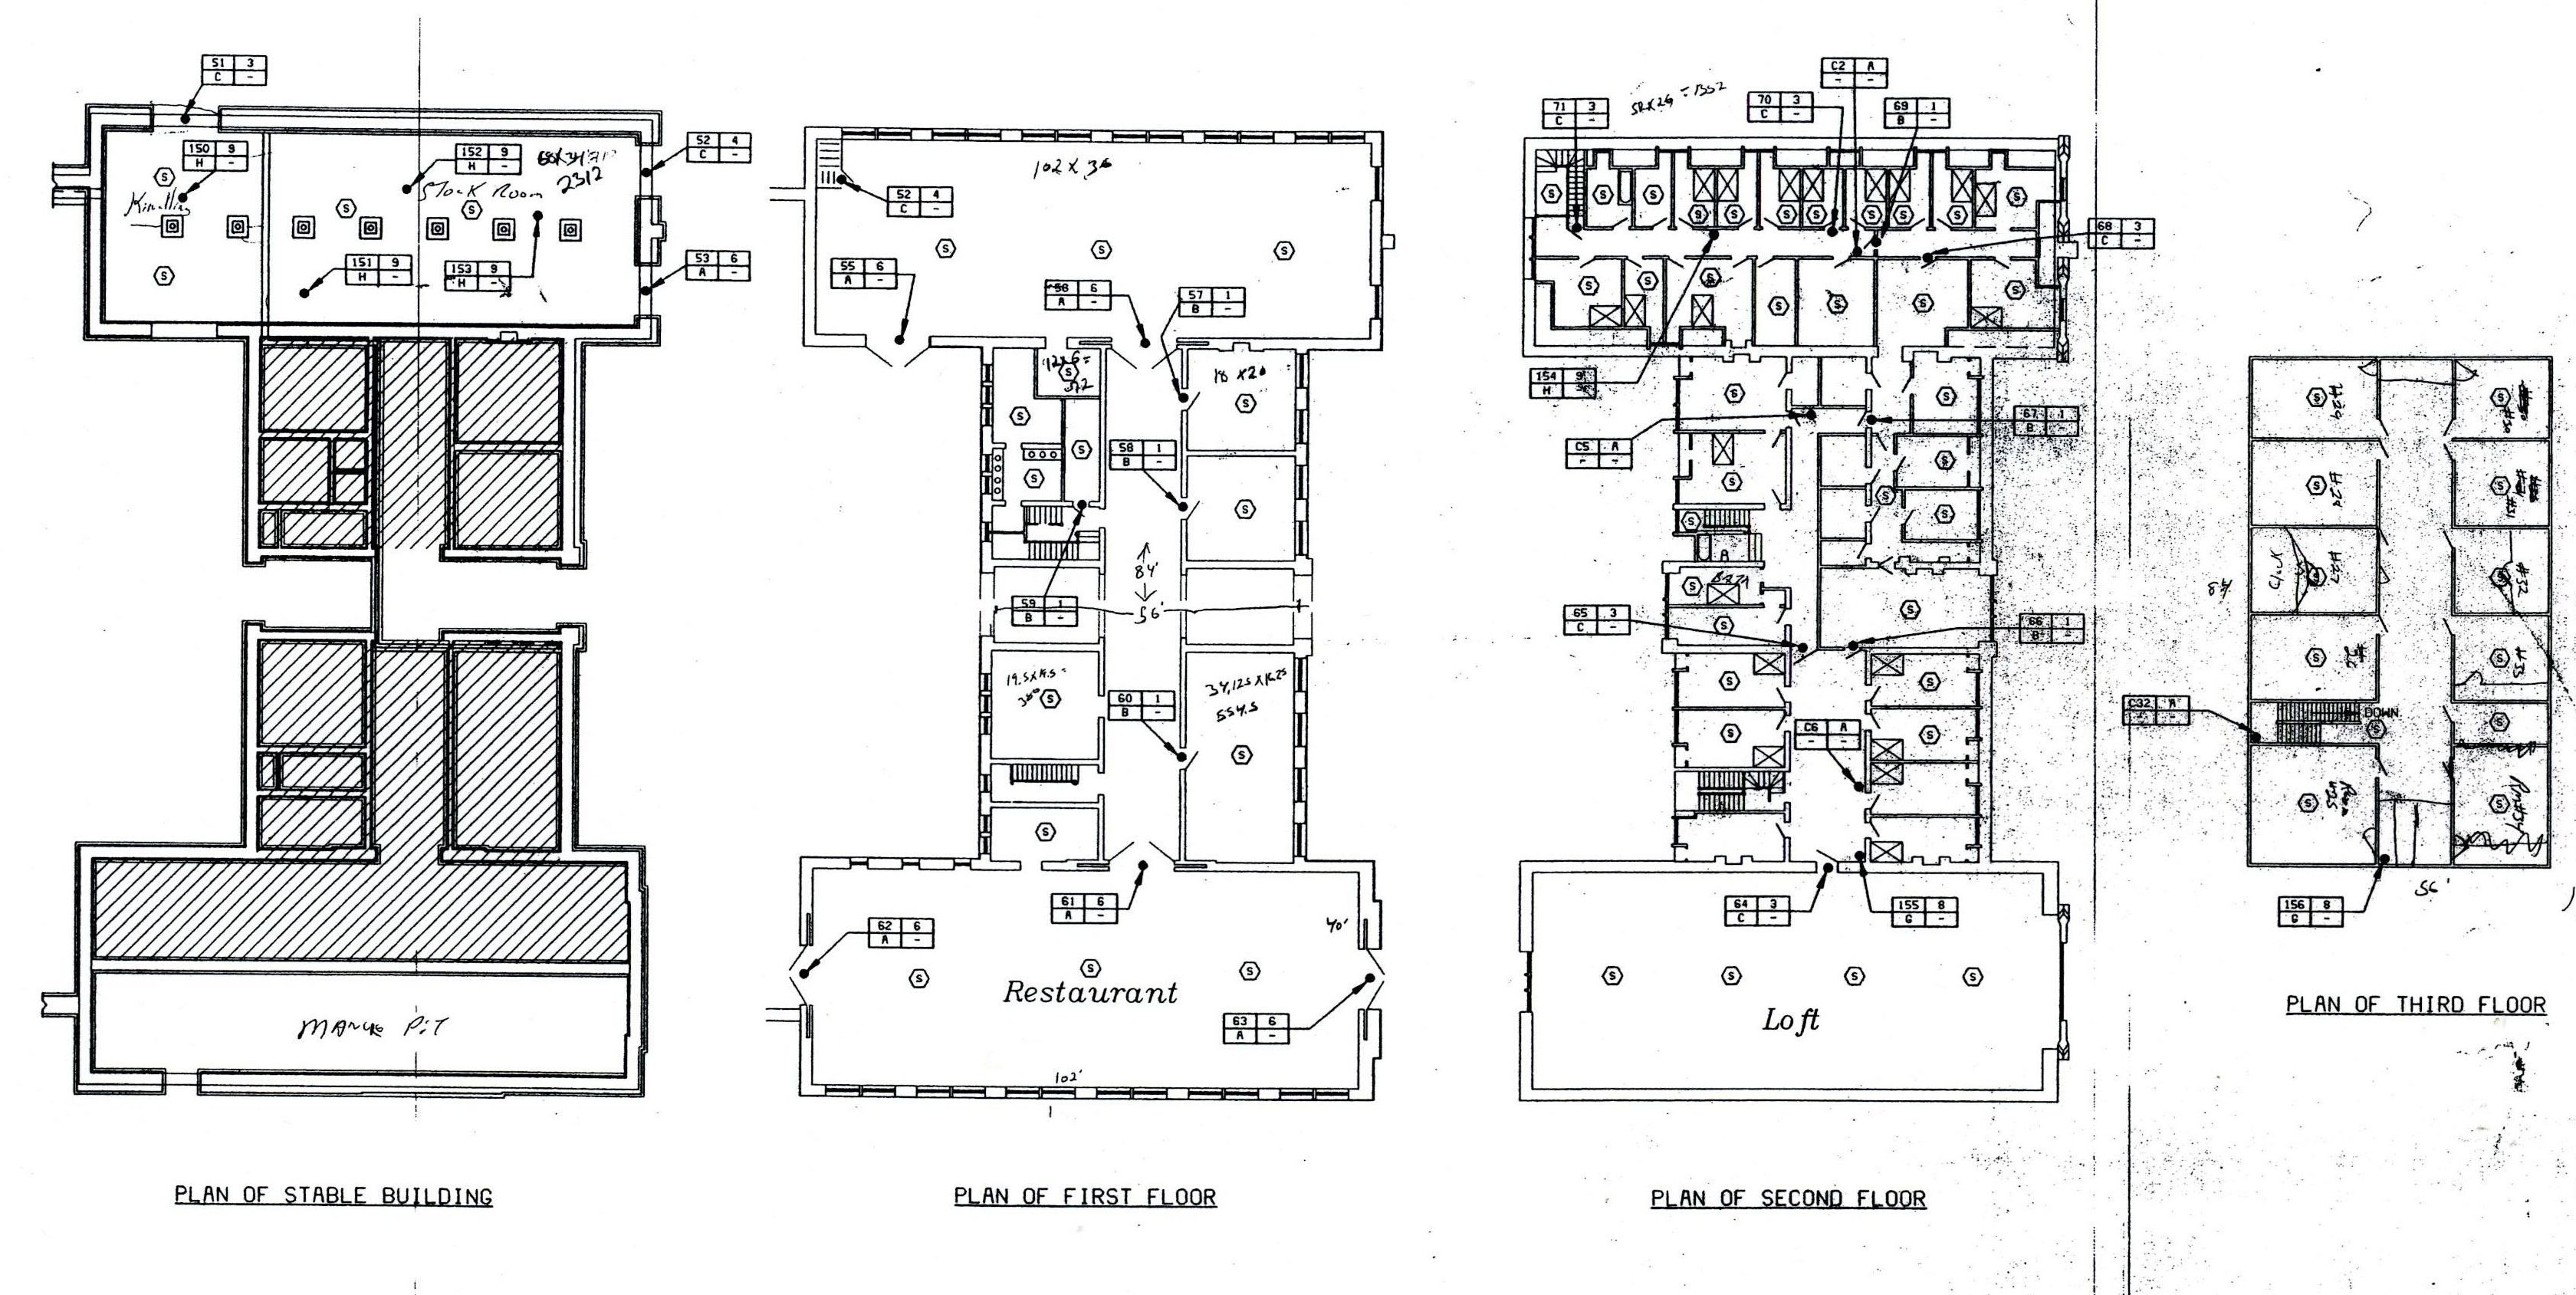 Biltmore house architectural plans house design plans for Quadruplex floor plans